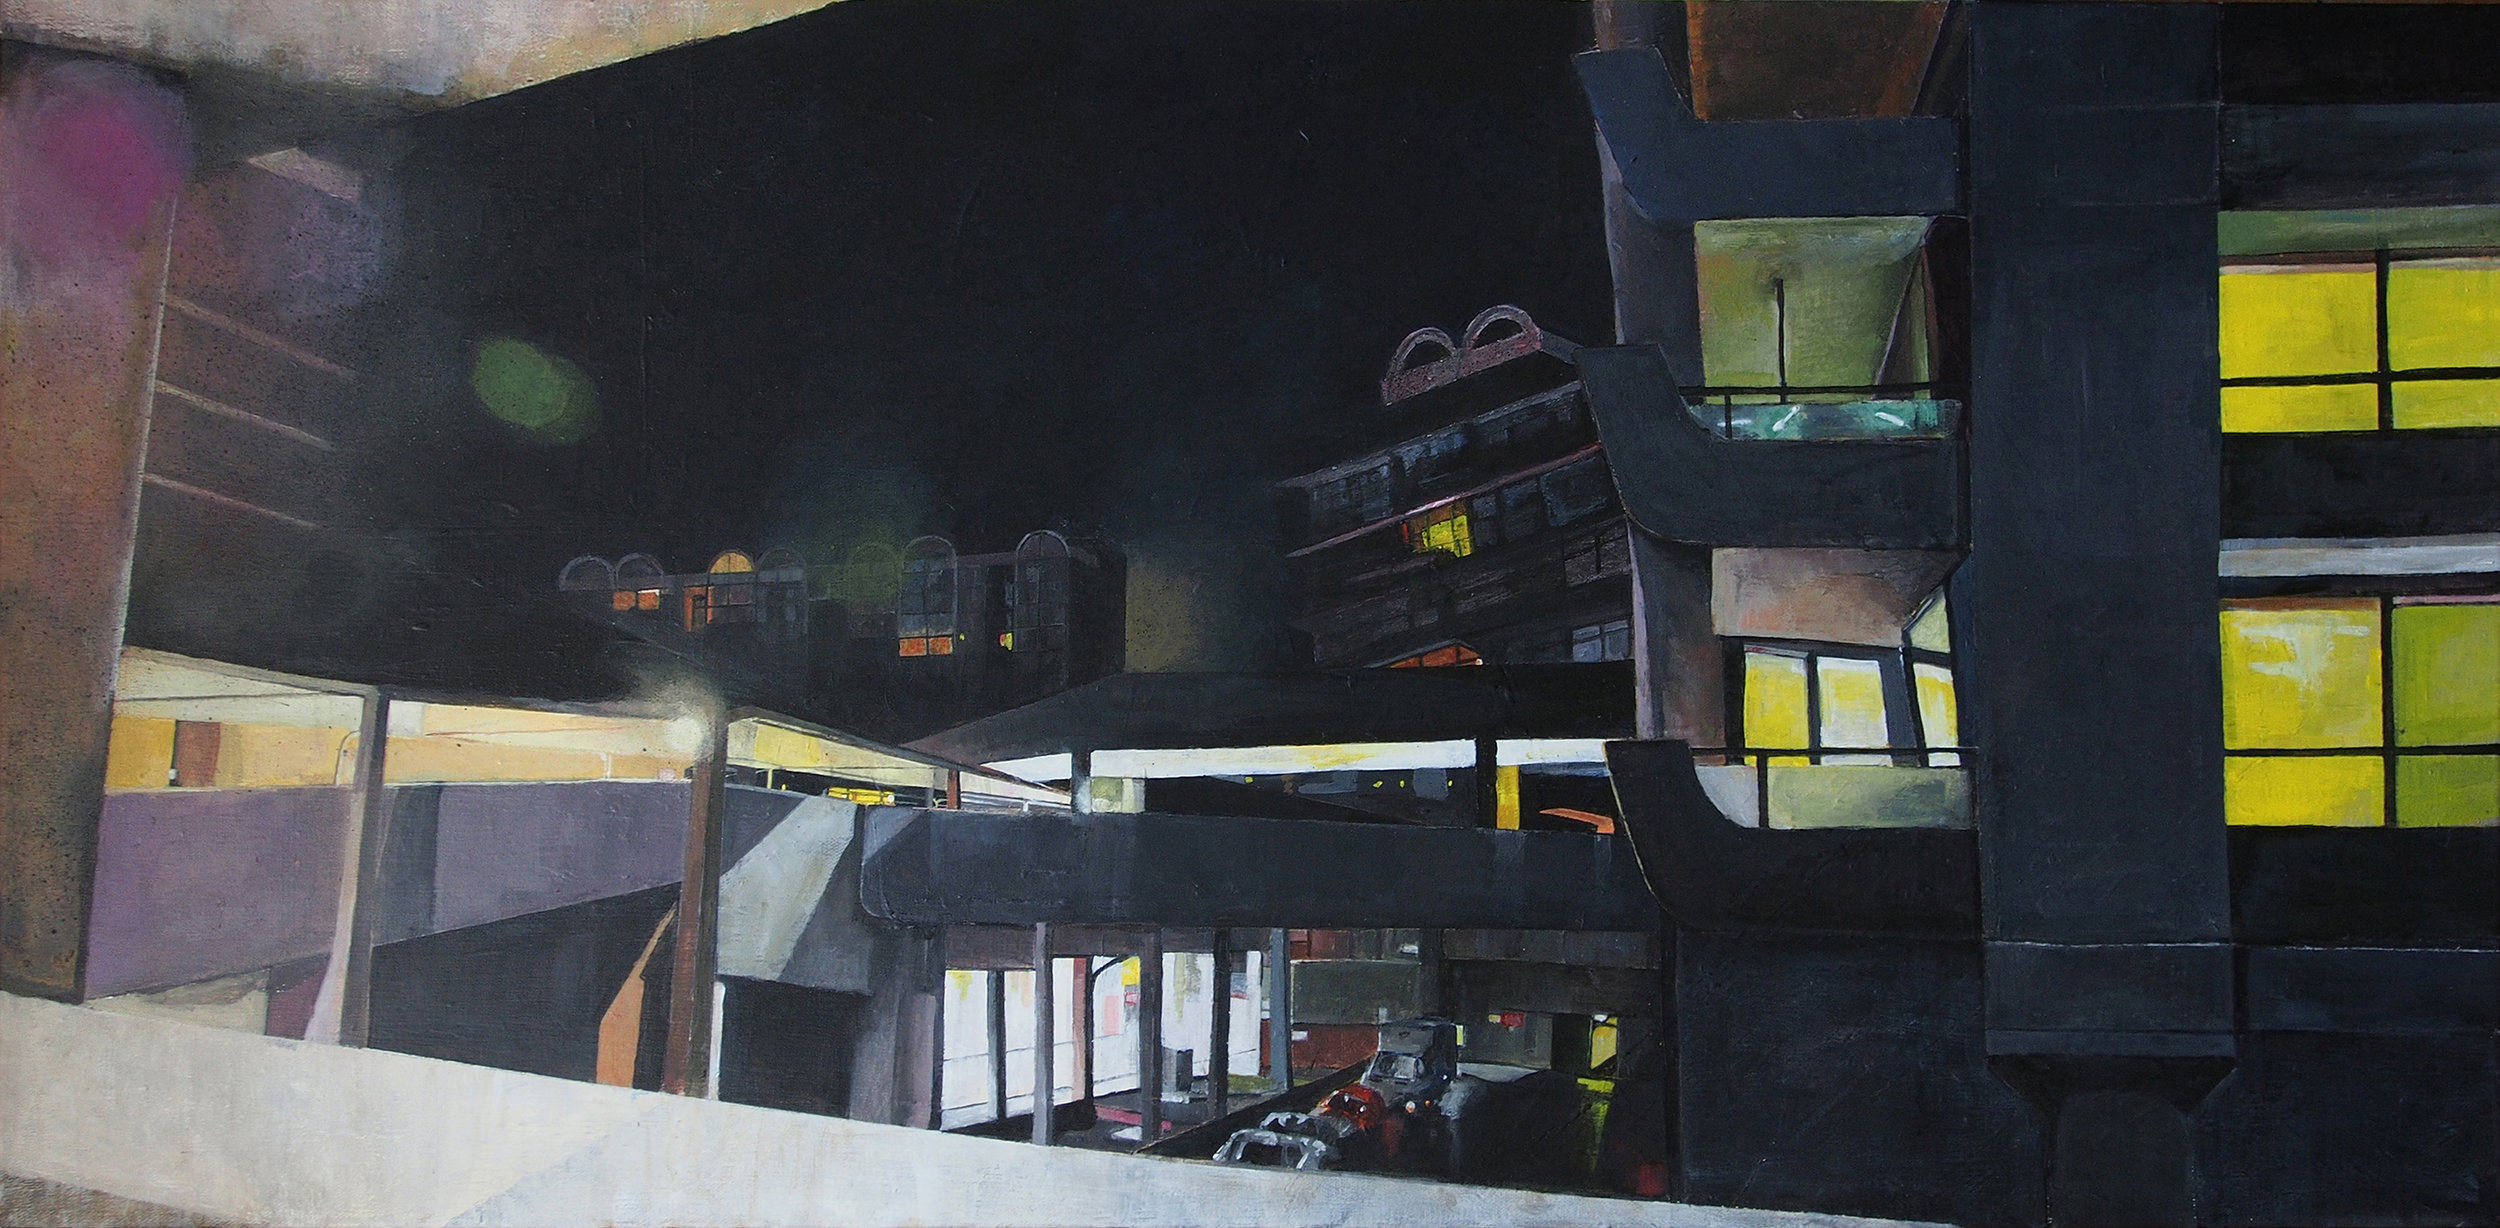 Victoria Dale, Barbican (at night), Acrylic on canvas, 50 cm x 100 cm x 3 cm,  http://www.vickydale.com/